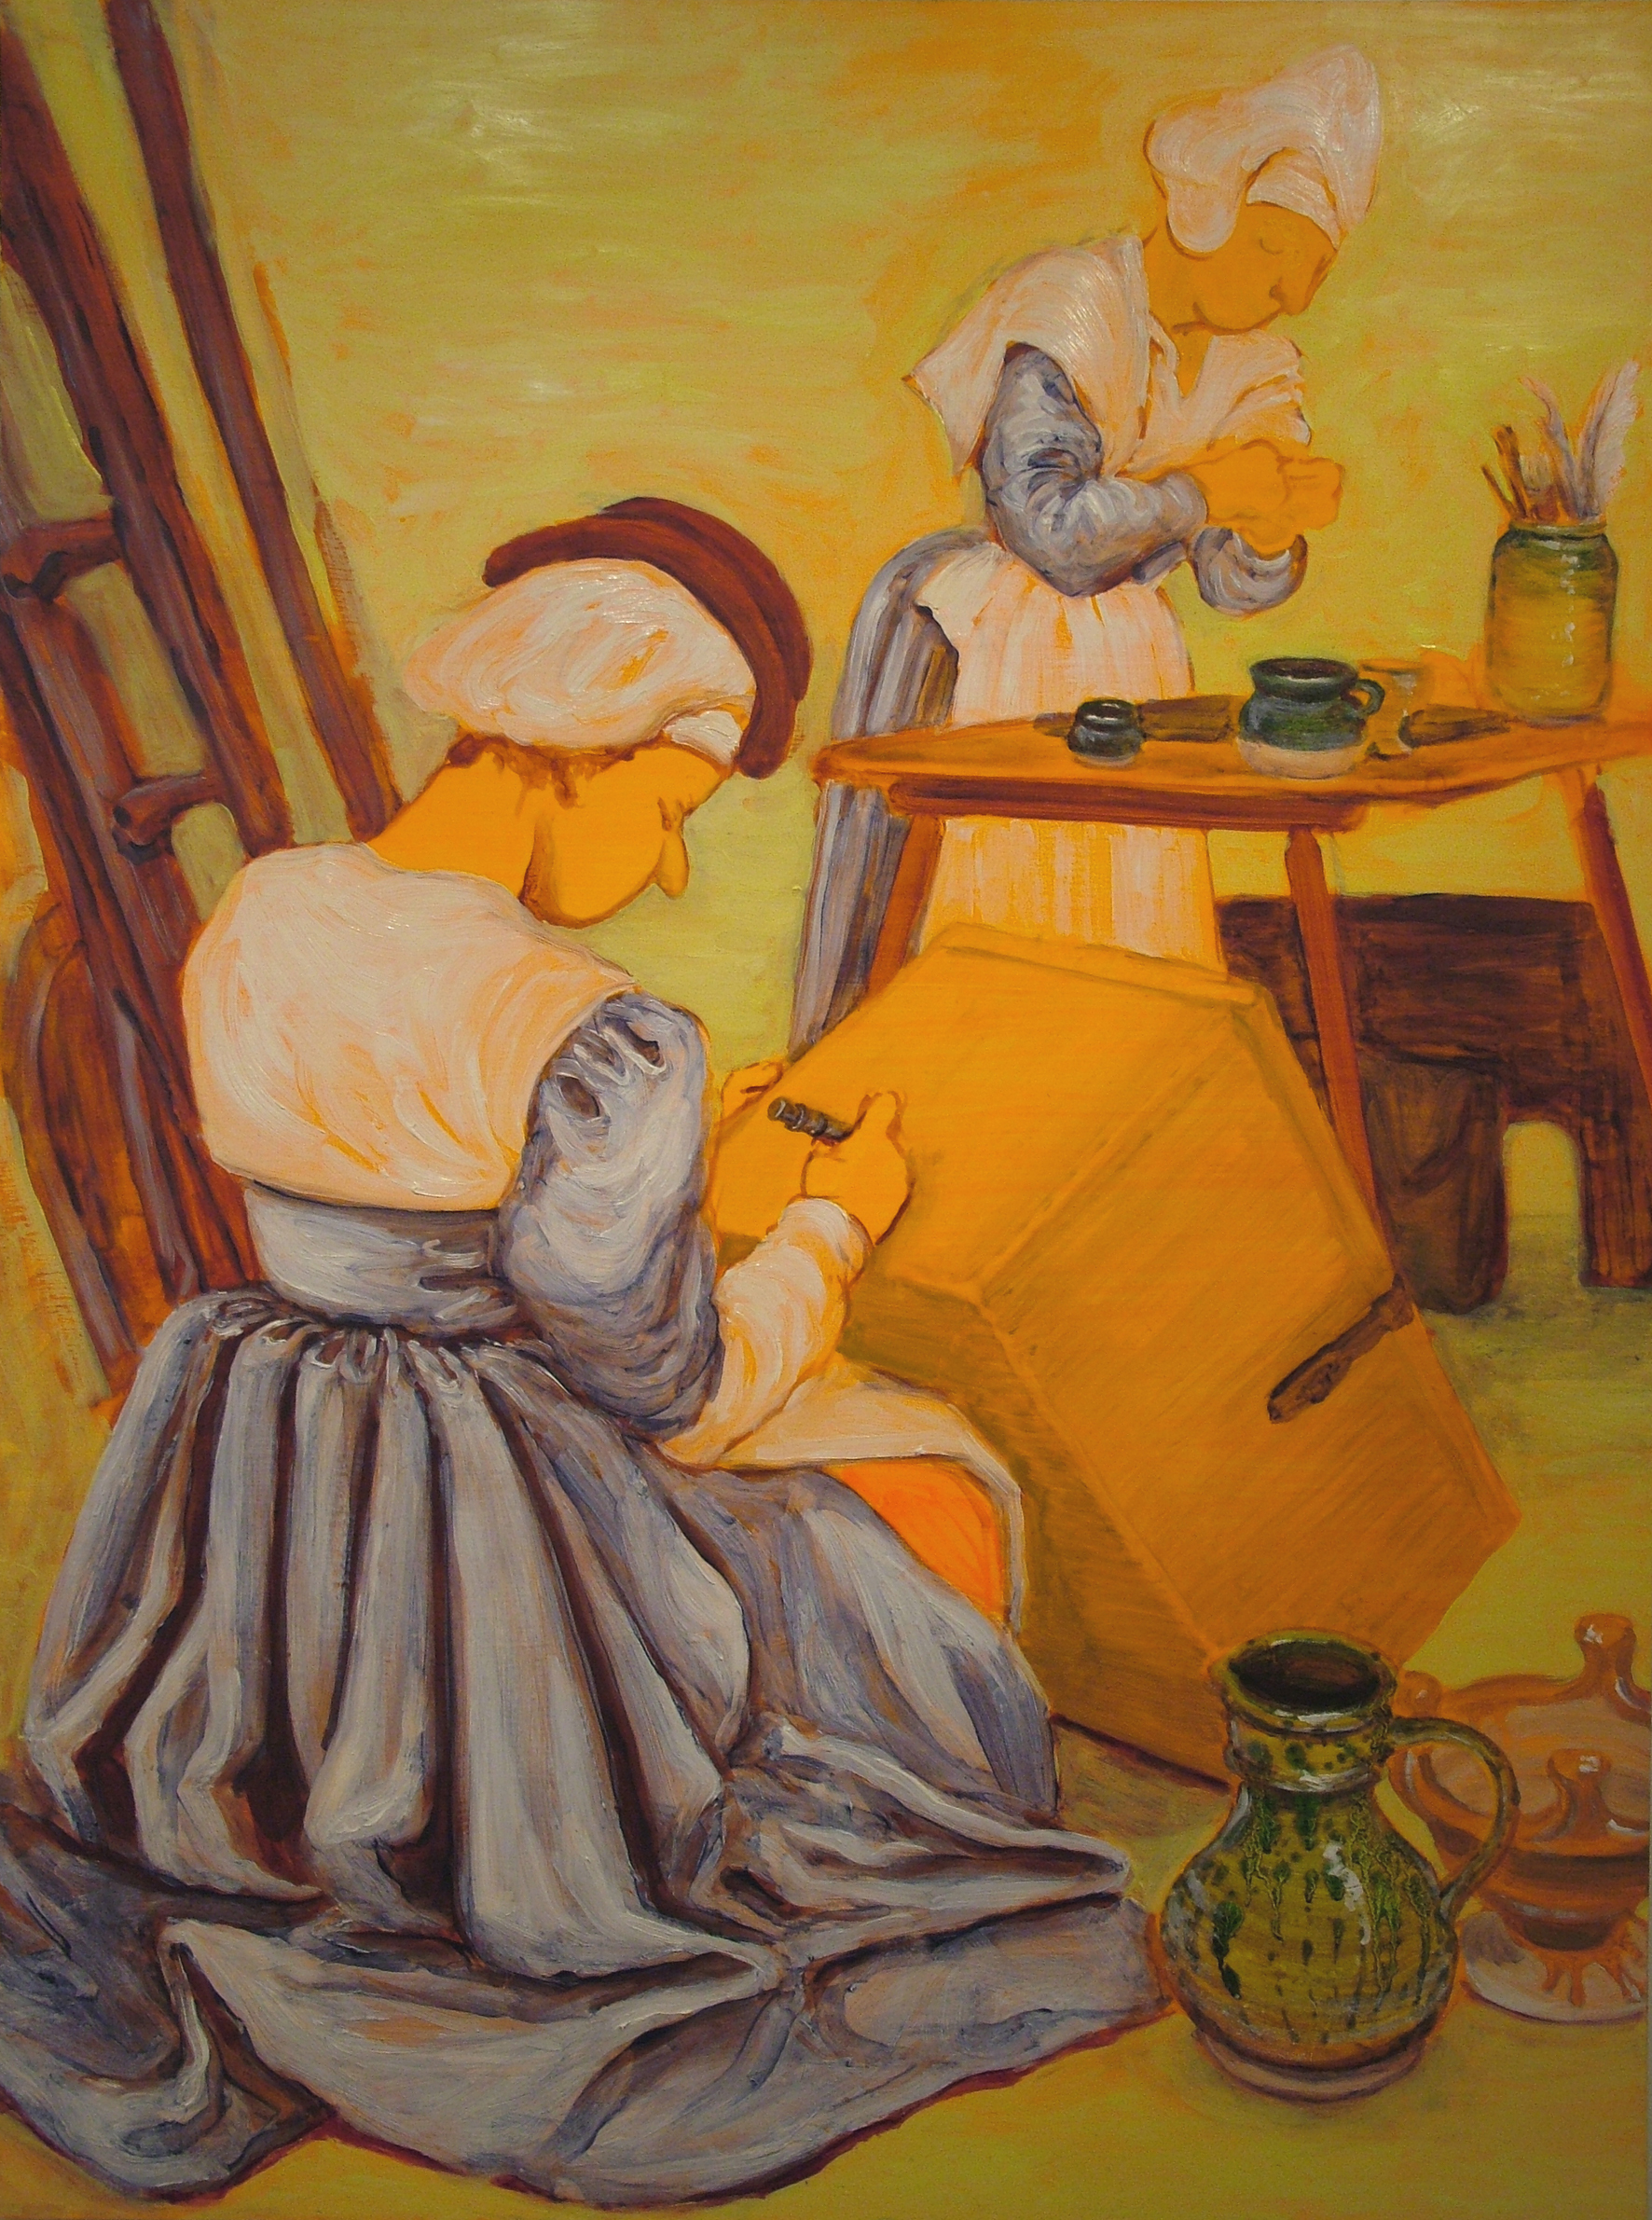 The Peasant-Painter's Studio, 2007,